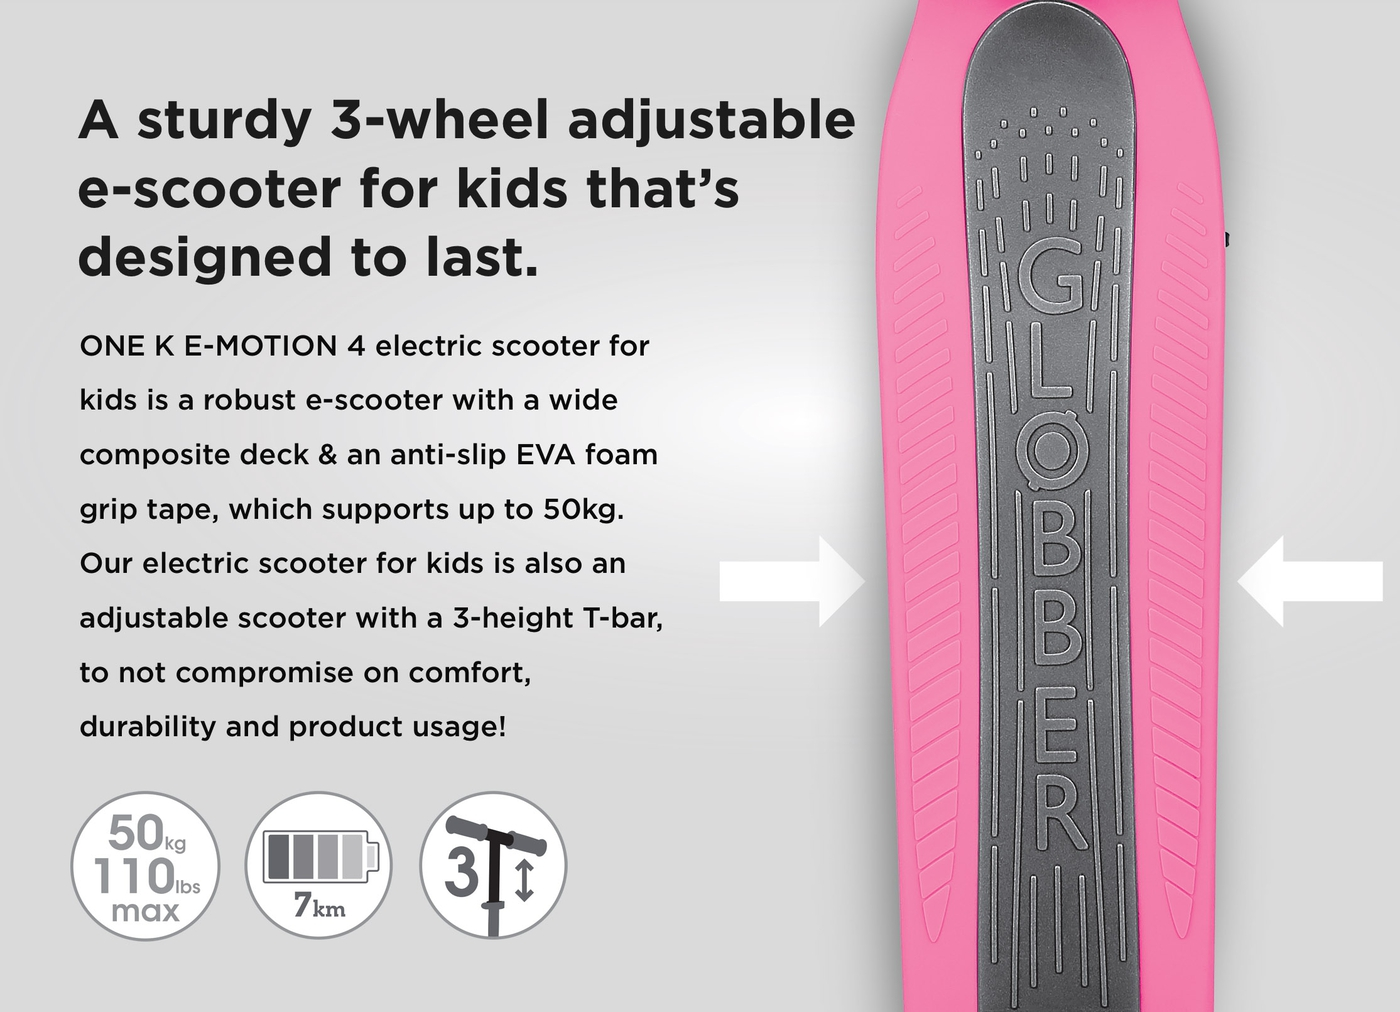 A sturdy 3-wheel adjustable e-scooter for kids that's designed to last.